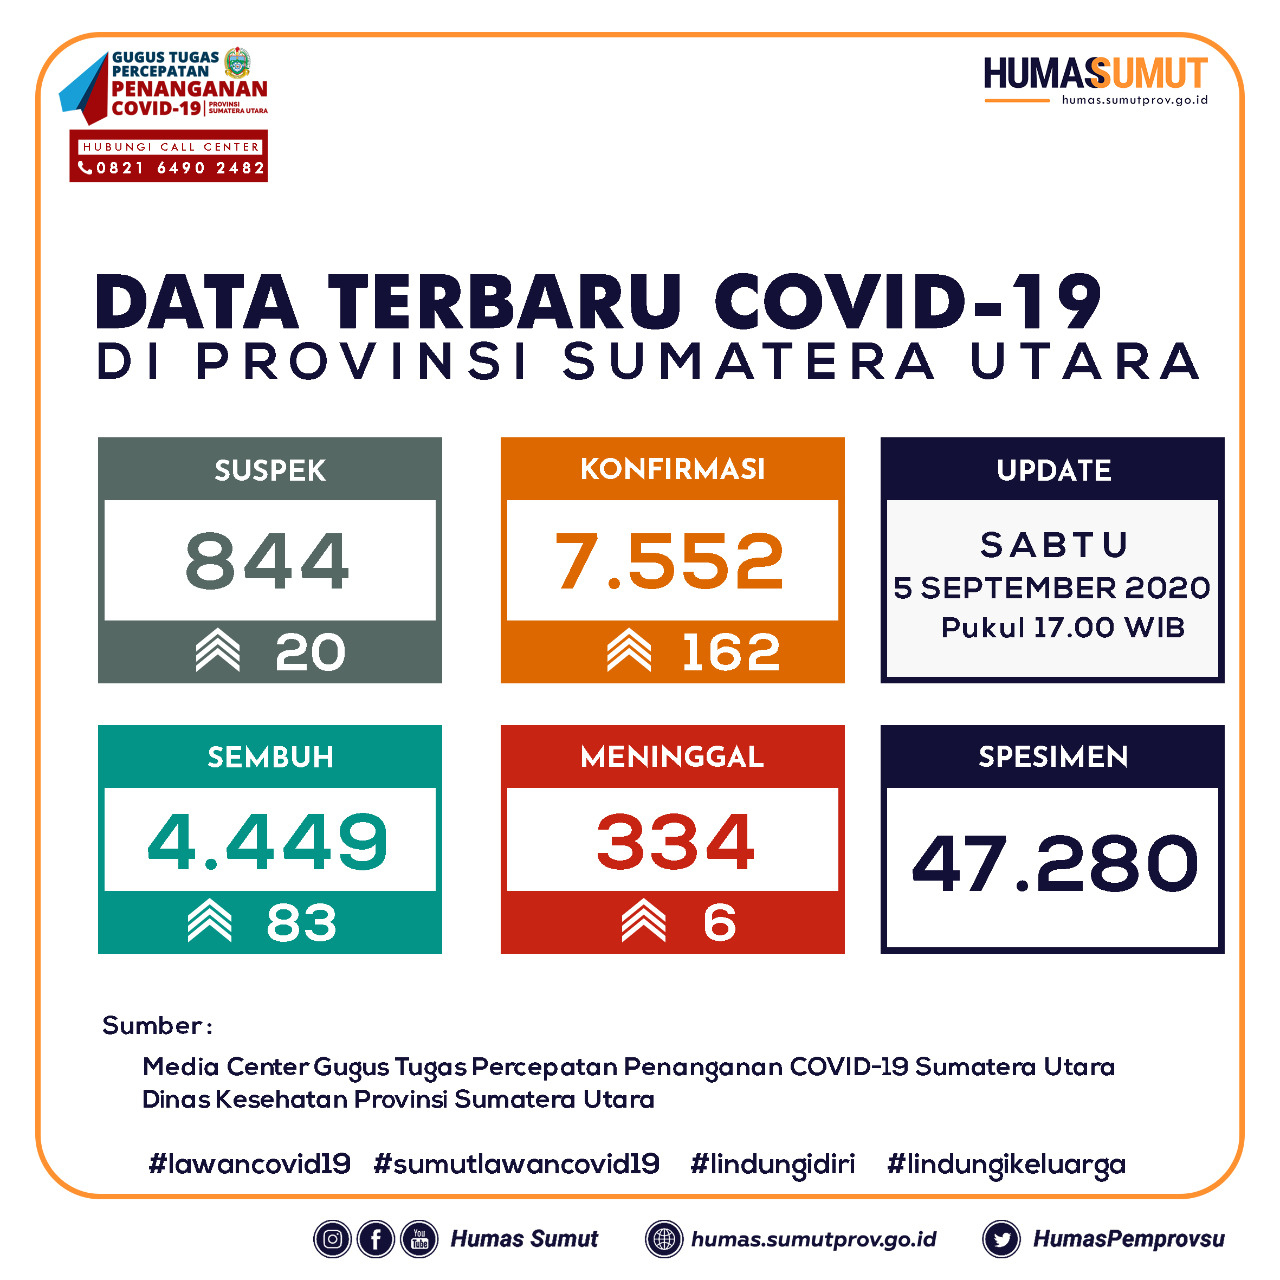 Update Data Covid-19 di Sumatera Utara 5 September 2020